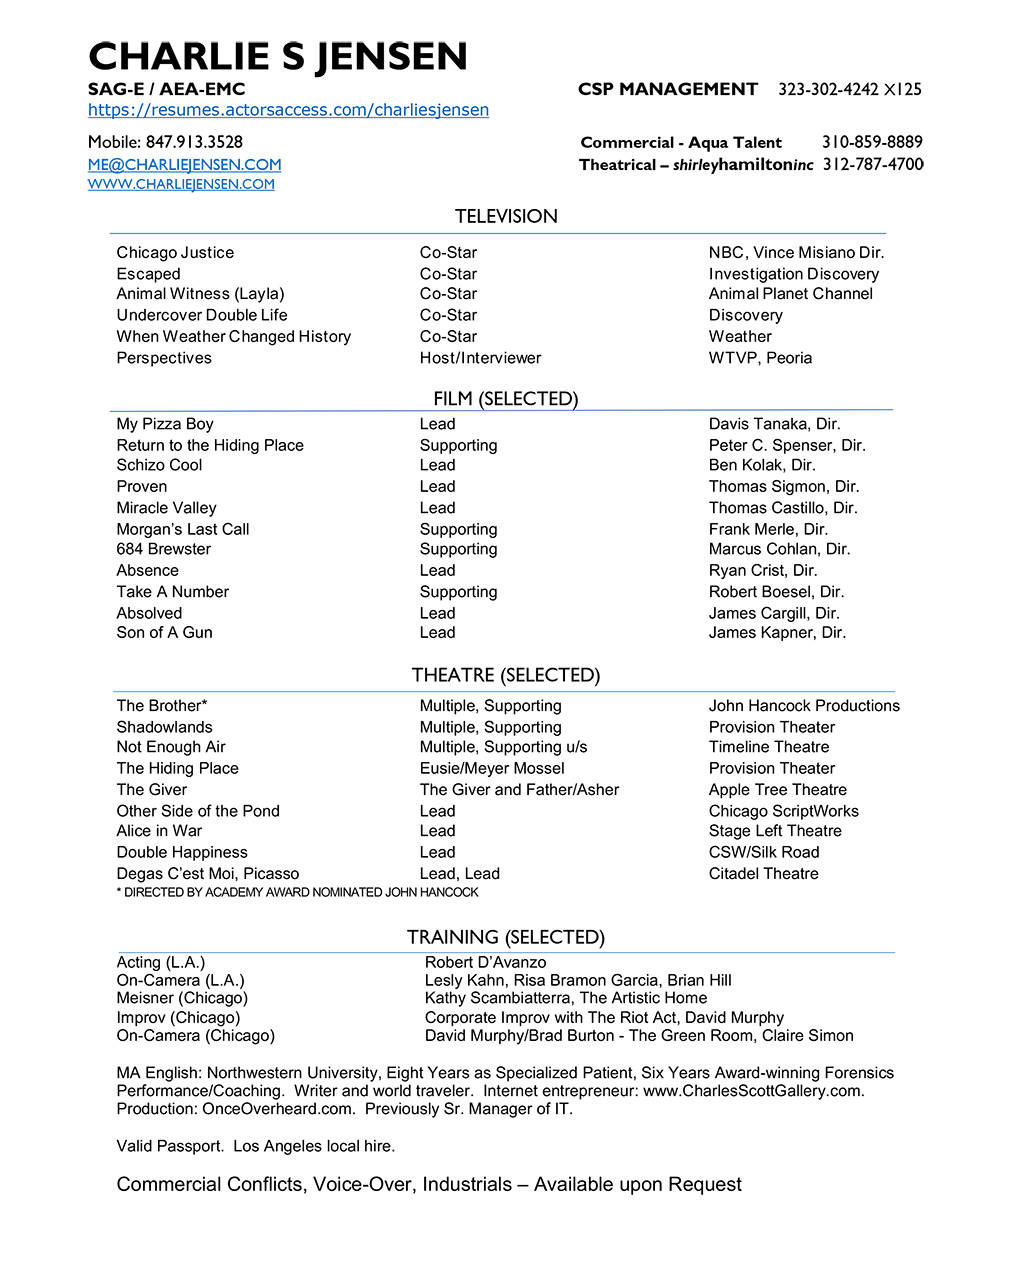 resume - for PDF click above